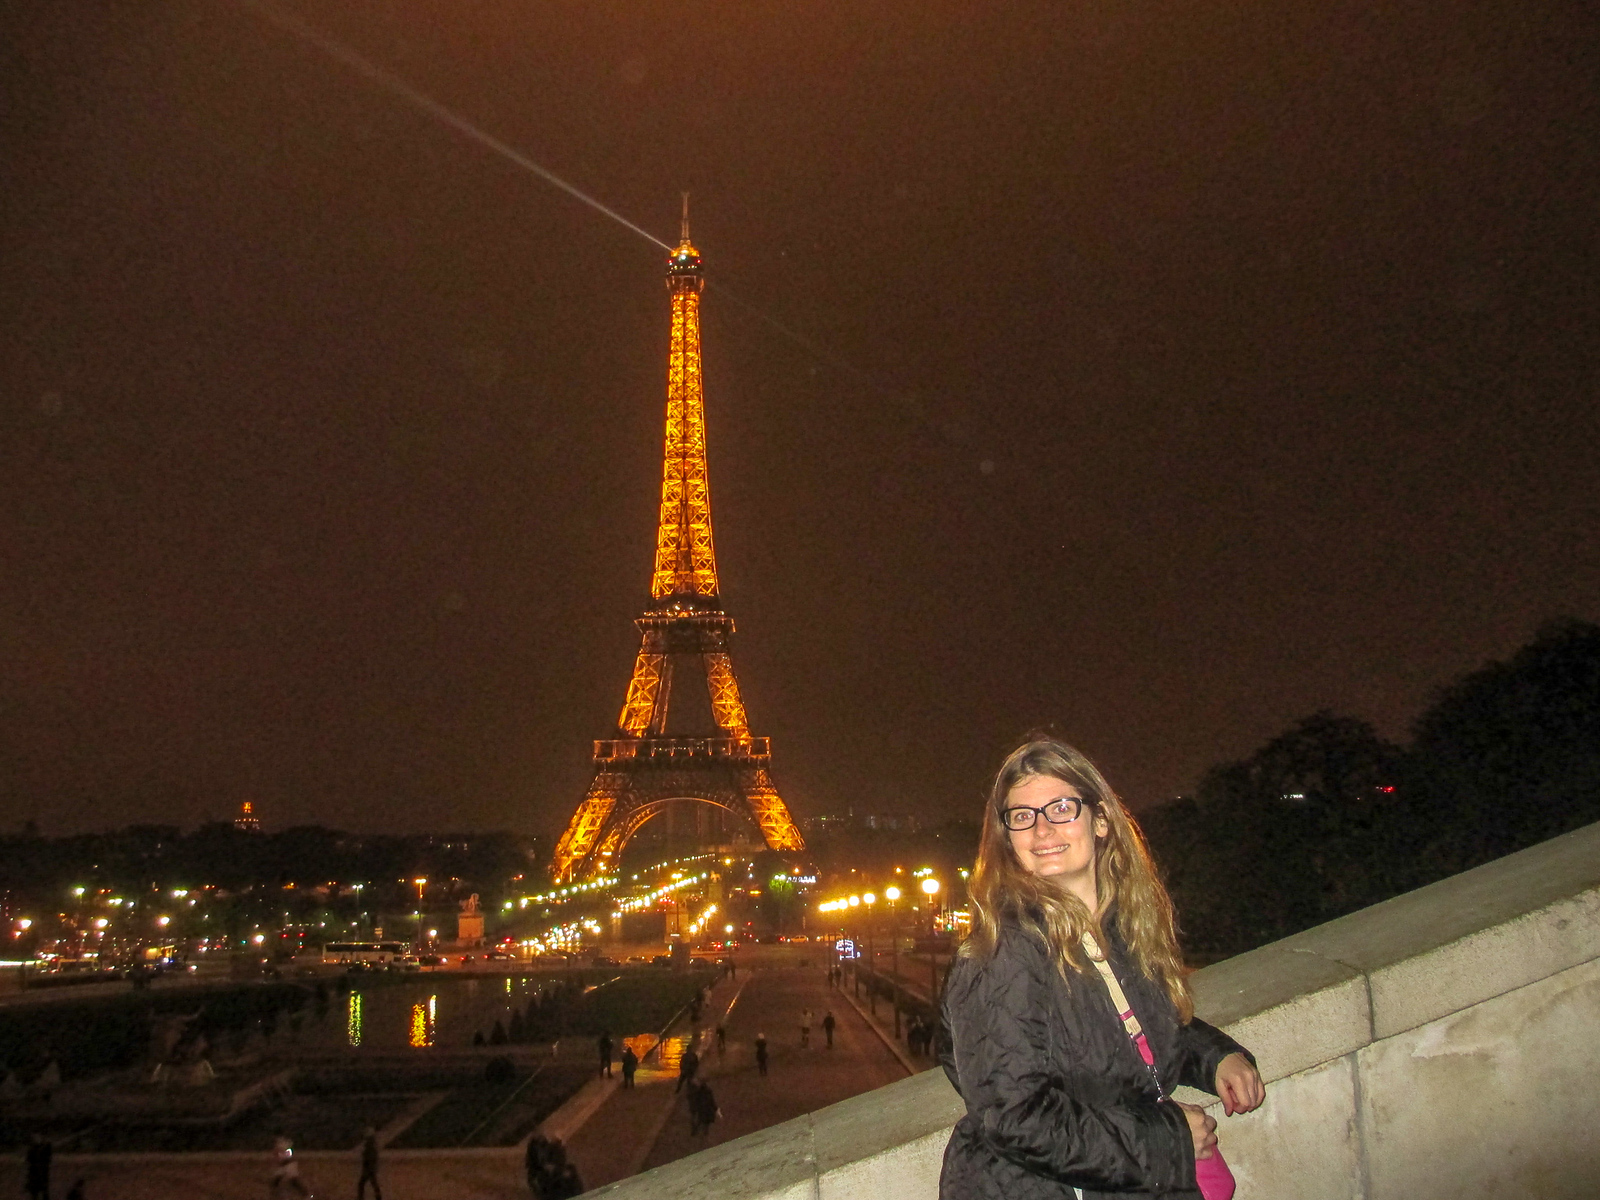 traveling in paris for the first time? go and explore at night